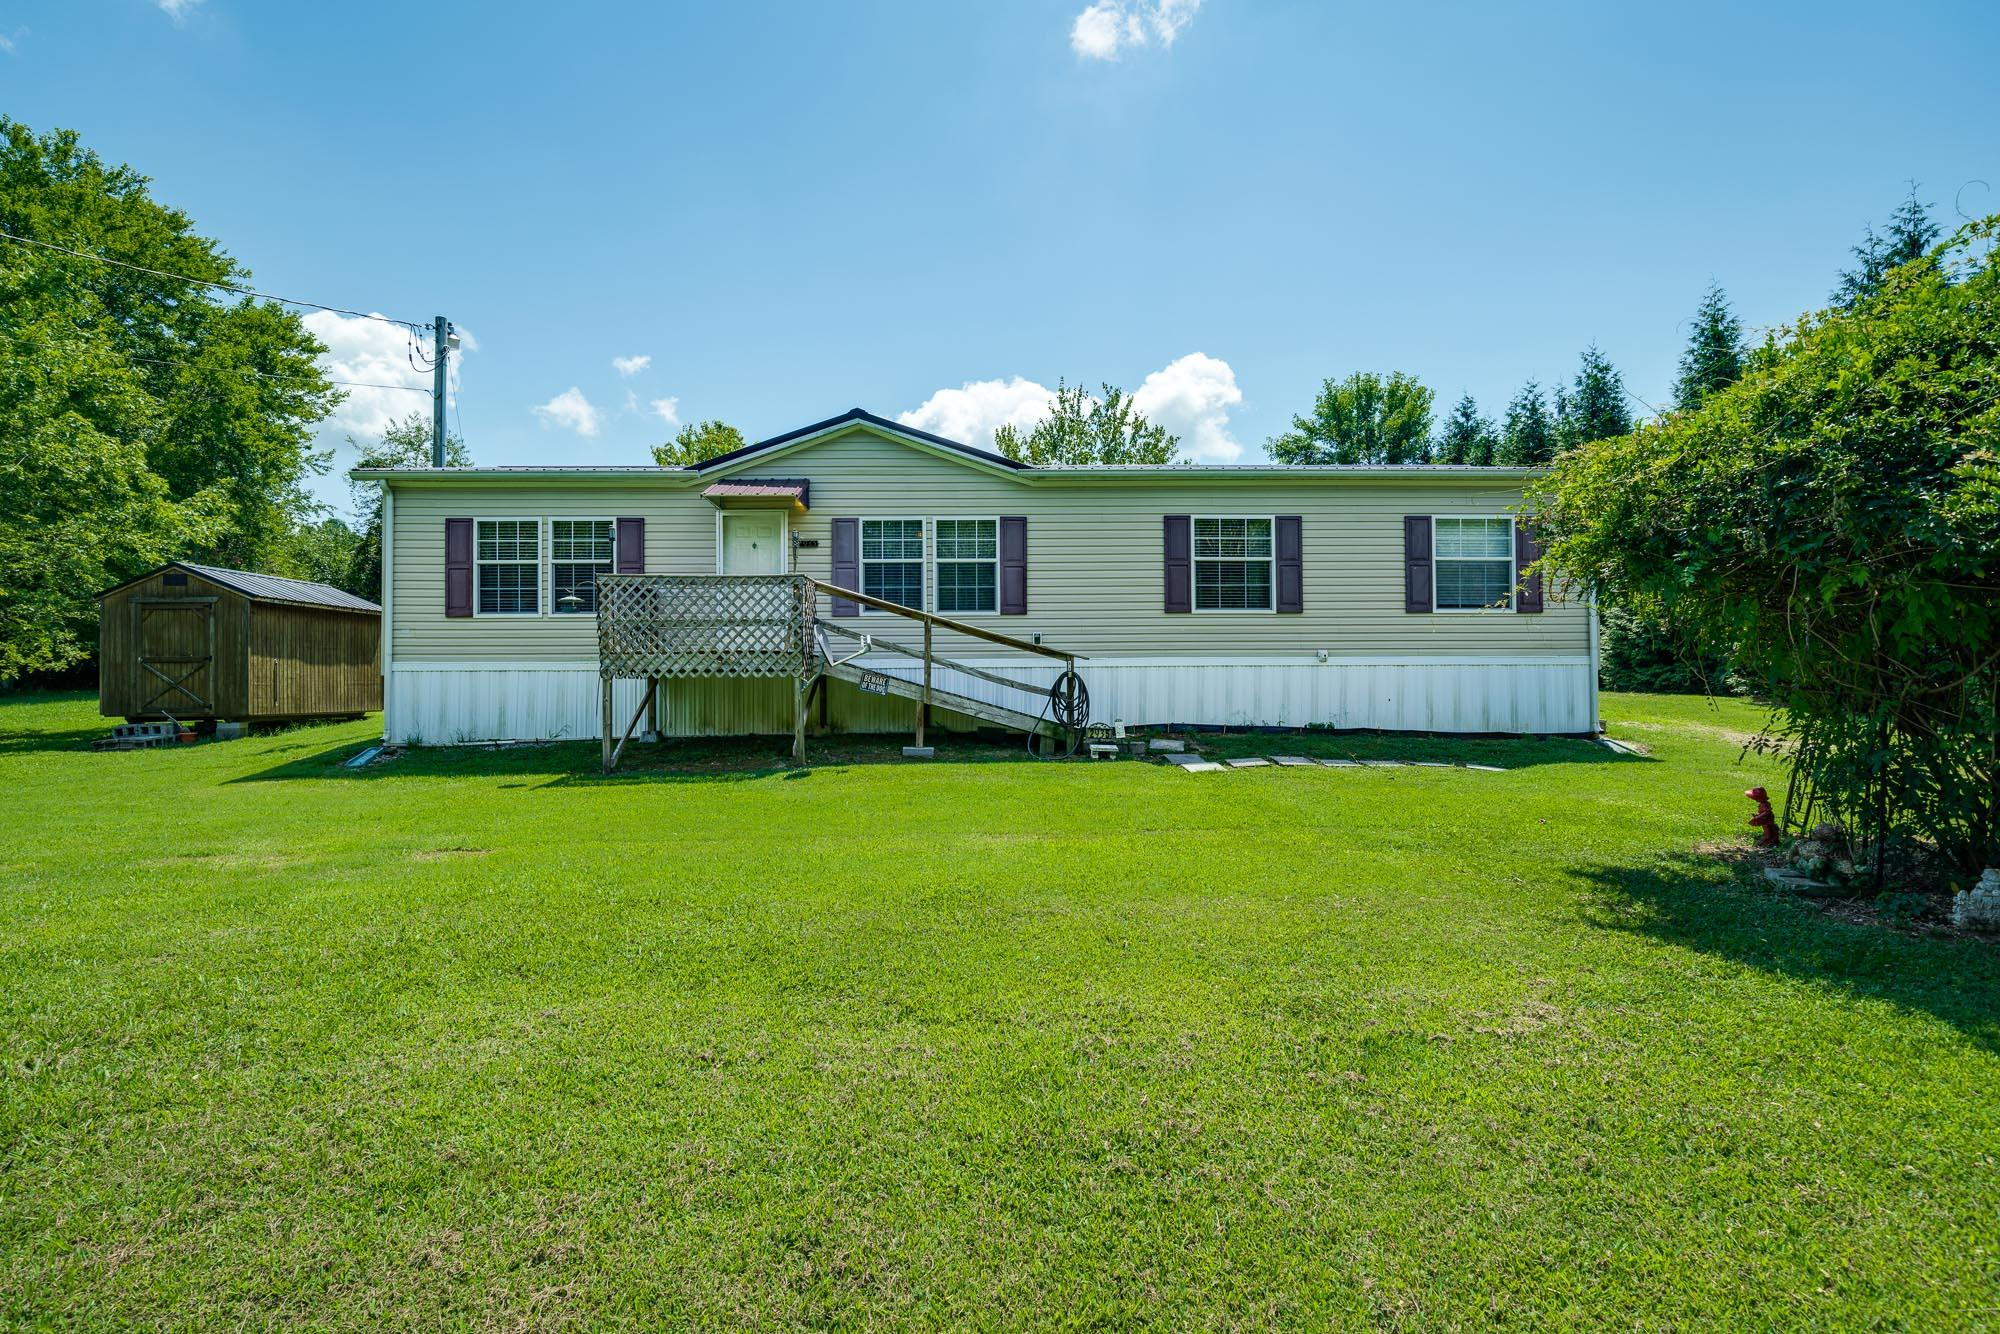 2935 Oakdale Cir, Cookeville, TN 38501 - Cookeville, TN real estate listing